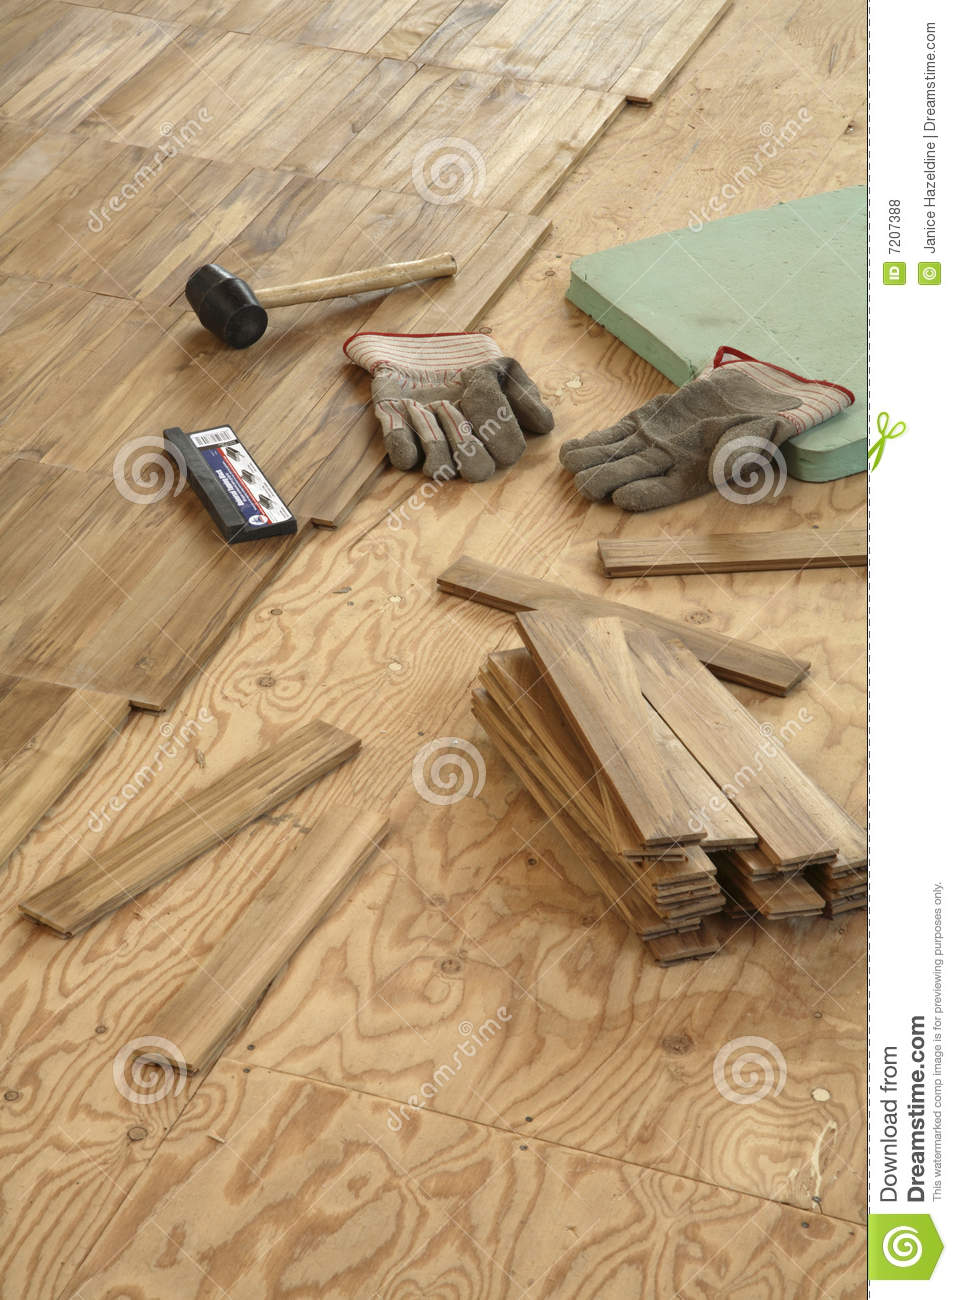 Laying Wood Flooring Stock Photo Image Of Labor Home